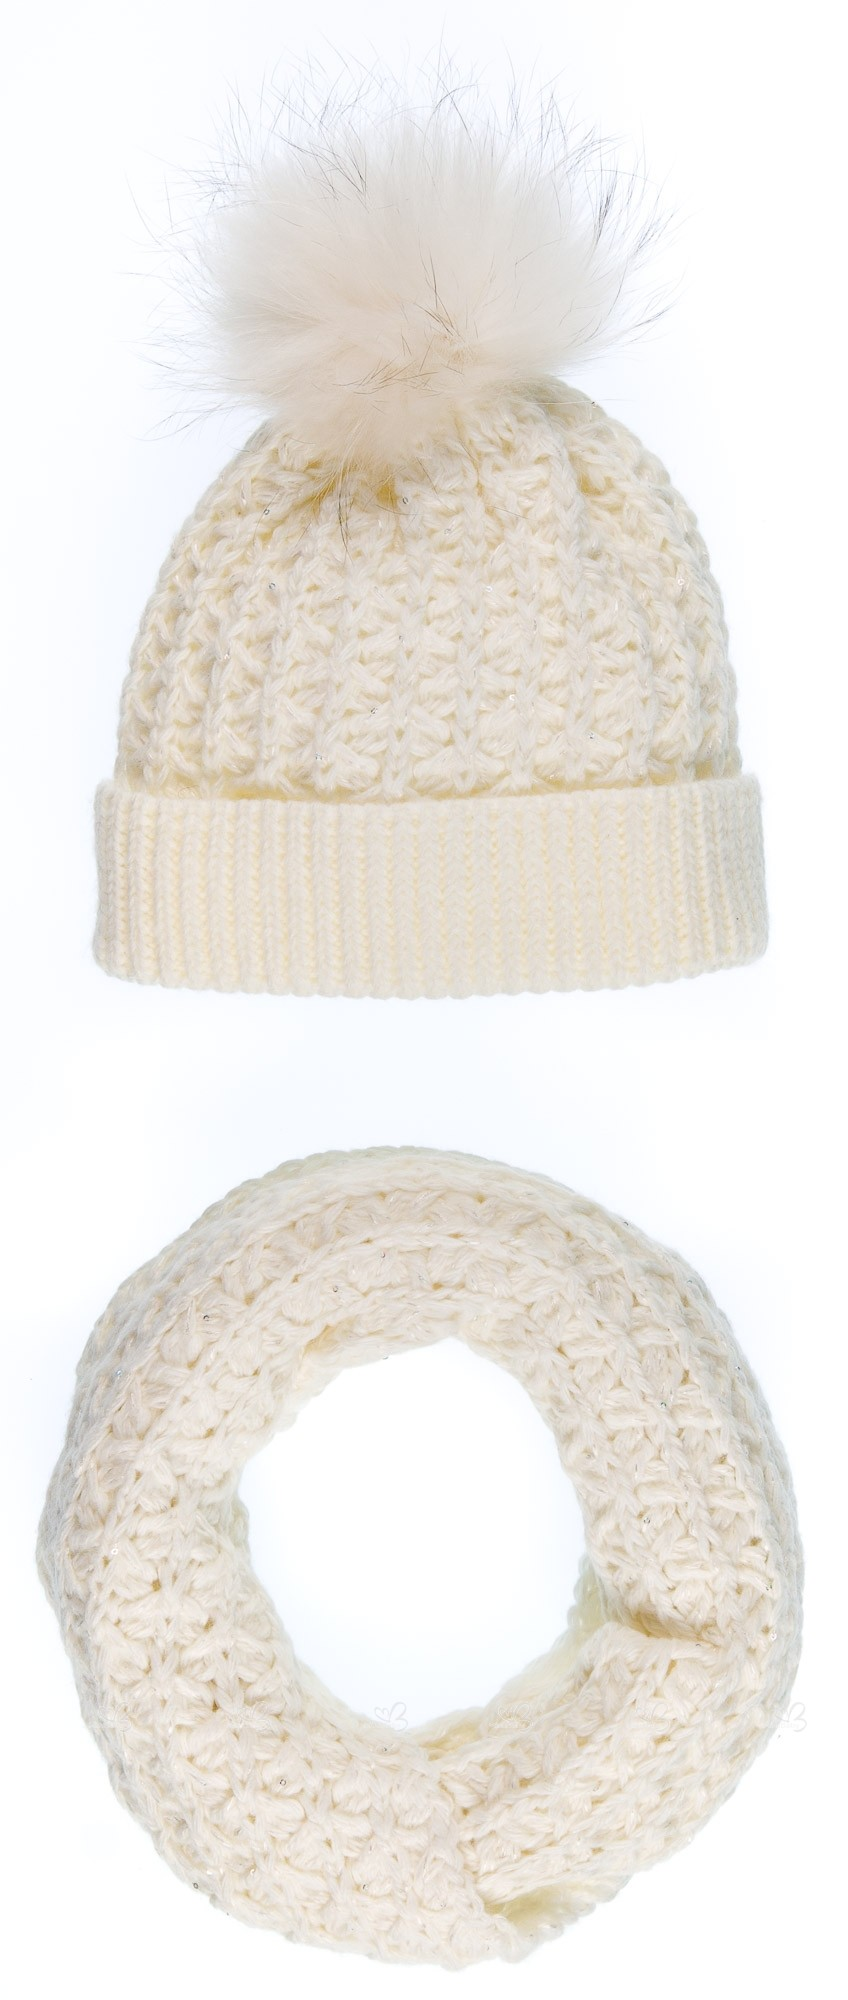 b2cefa3404b Ivory Knitted Hat with Fur Pom-Pom   Snood Set with sparkly sequins. Hover  to zoom